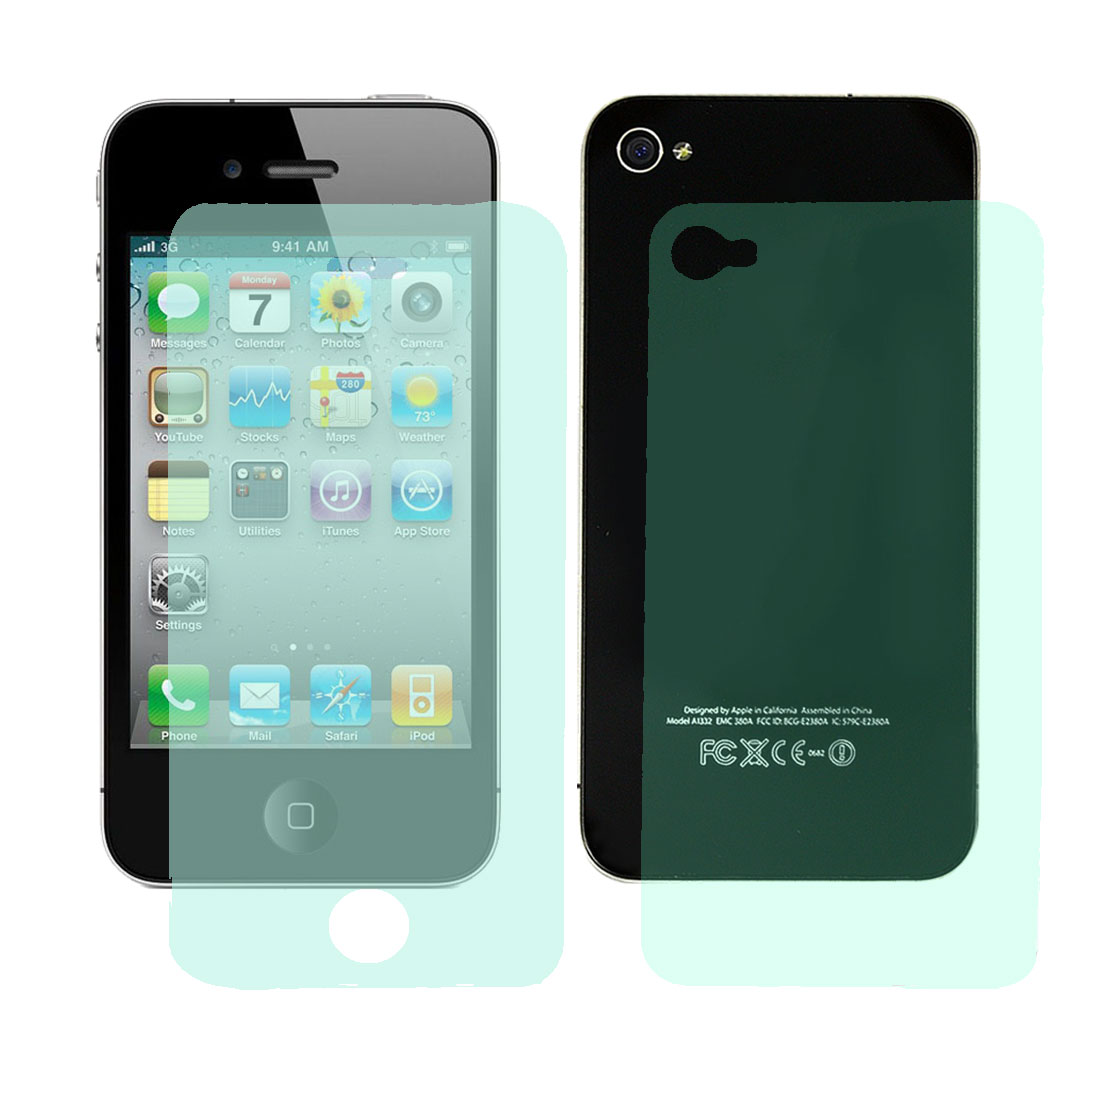 Clear Green Diamond Bling Sparkling Front Screen Guard Back Cover Film for iPhone 4 4G 4S 4GS